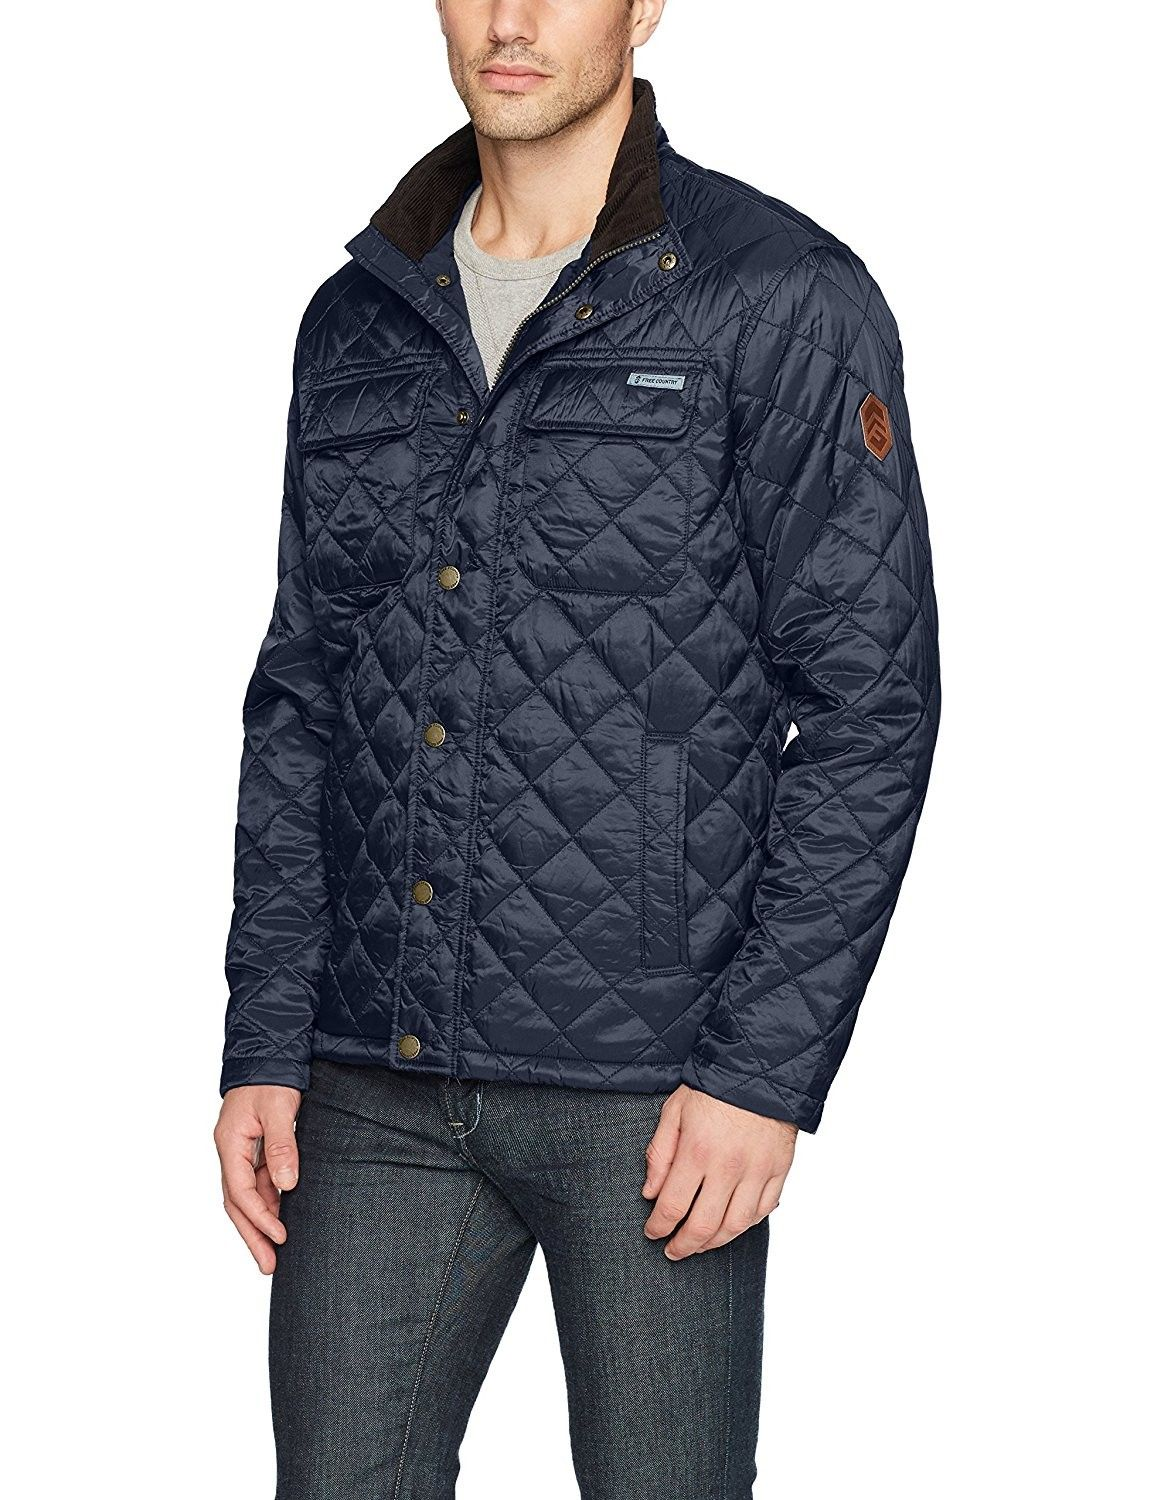 Men S Diamond Quilted Jacket With Corduroy Collar Dark Navy Cq186n8hc7e Men S Coats And Jackets Mens Fashion Country Mens Clothing Styles [ 1500 x 1154 Pixel ]